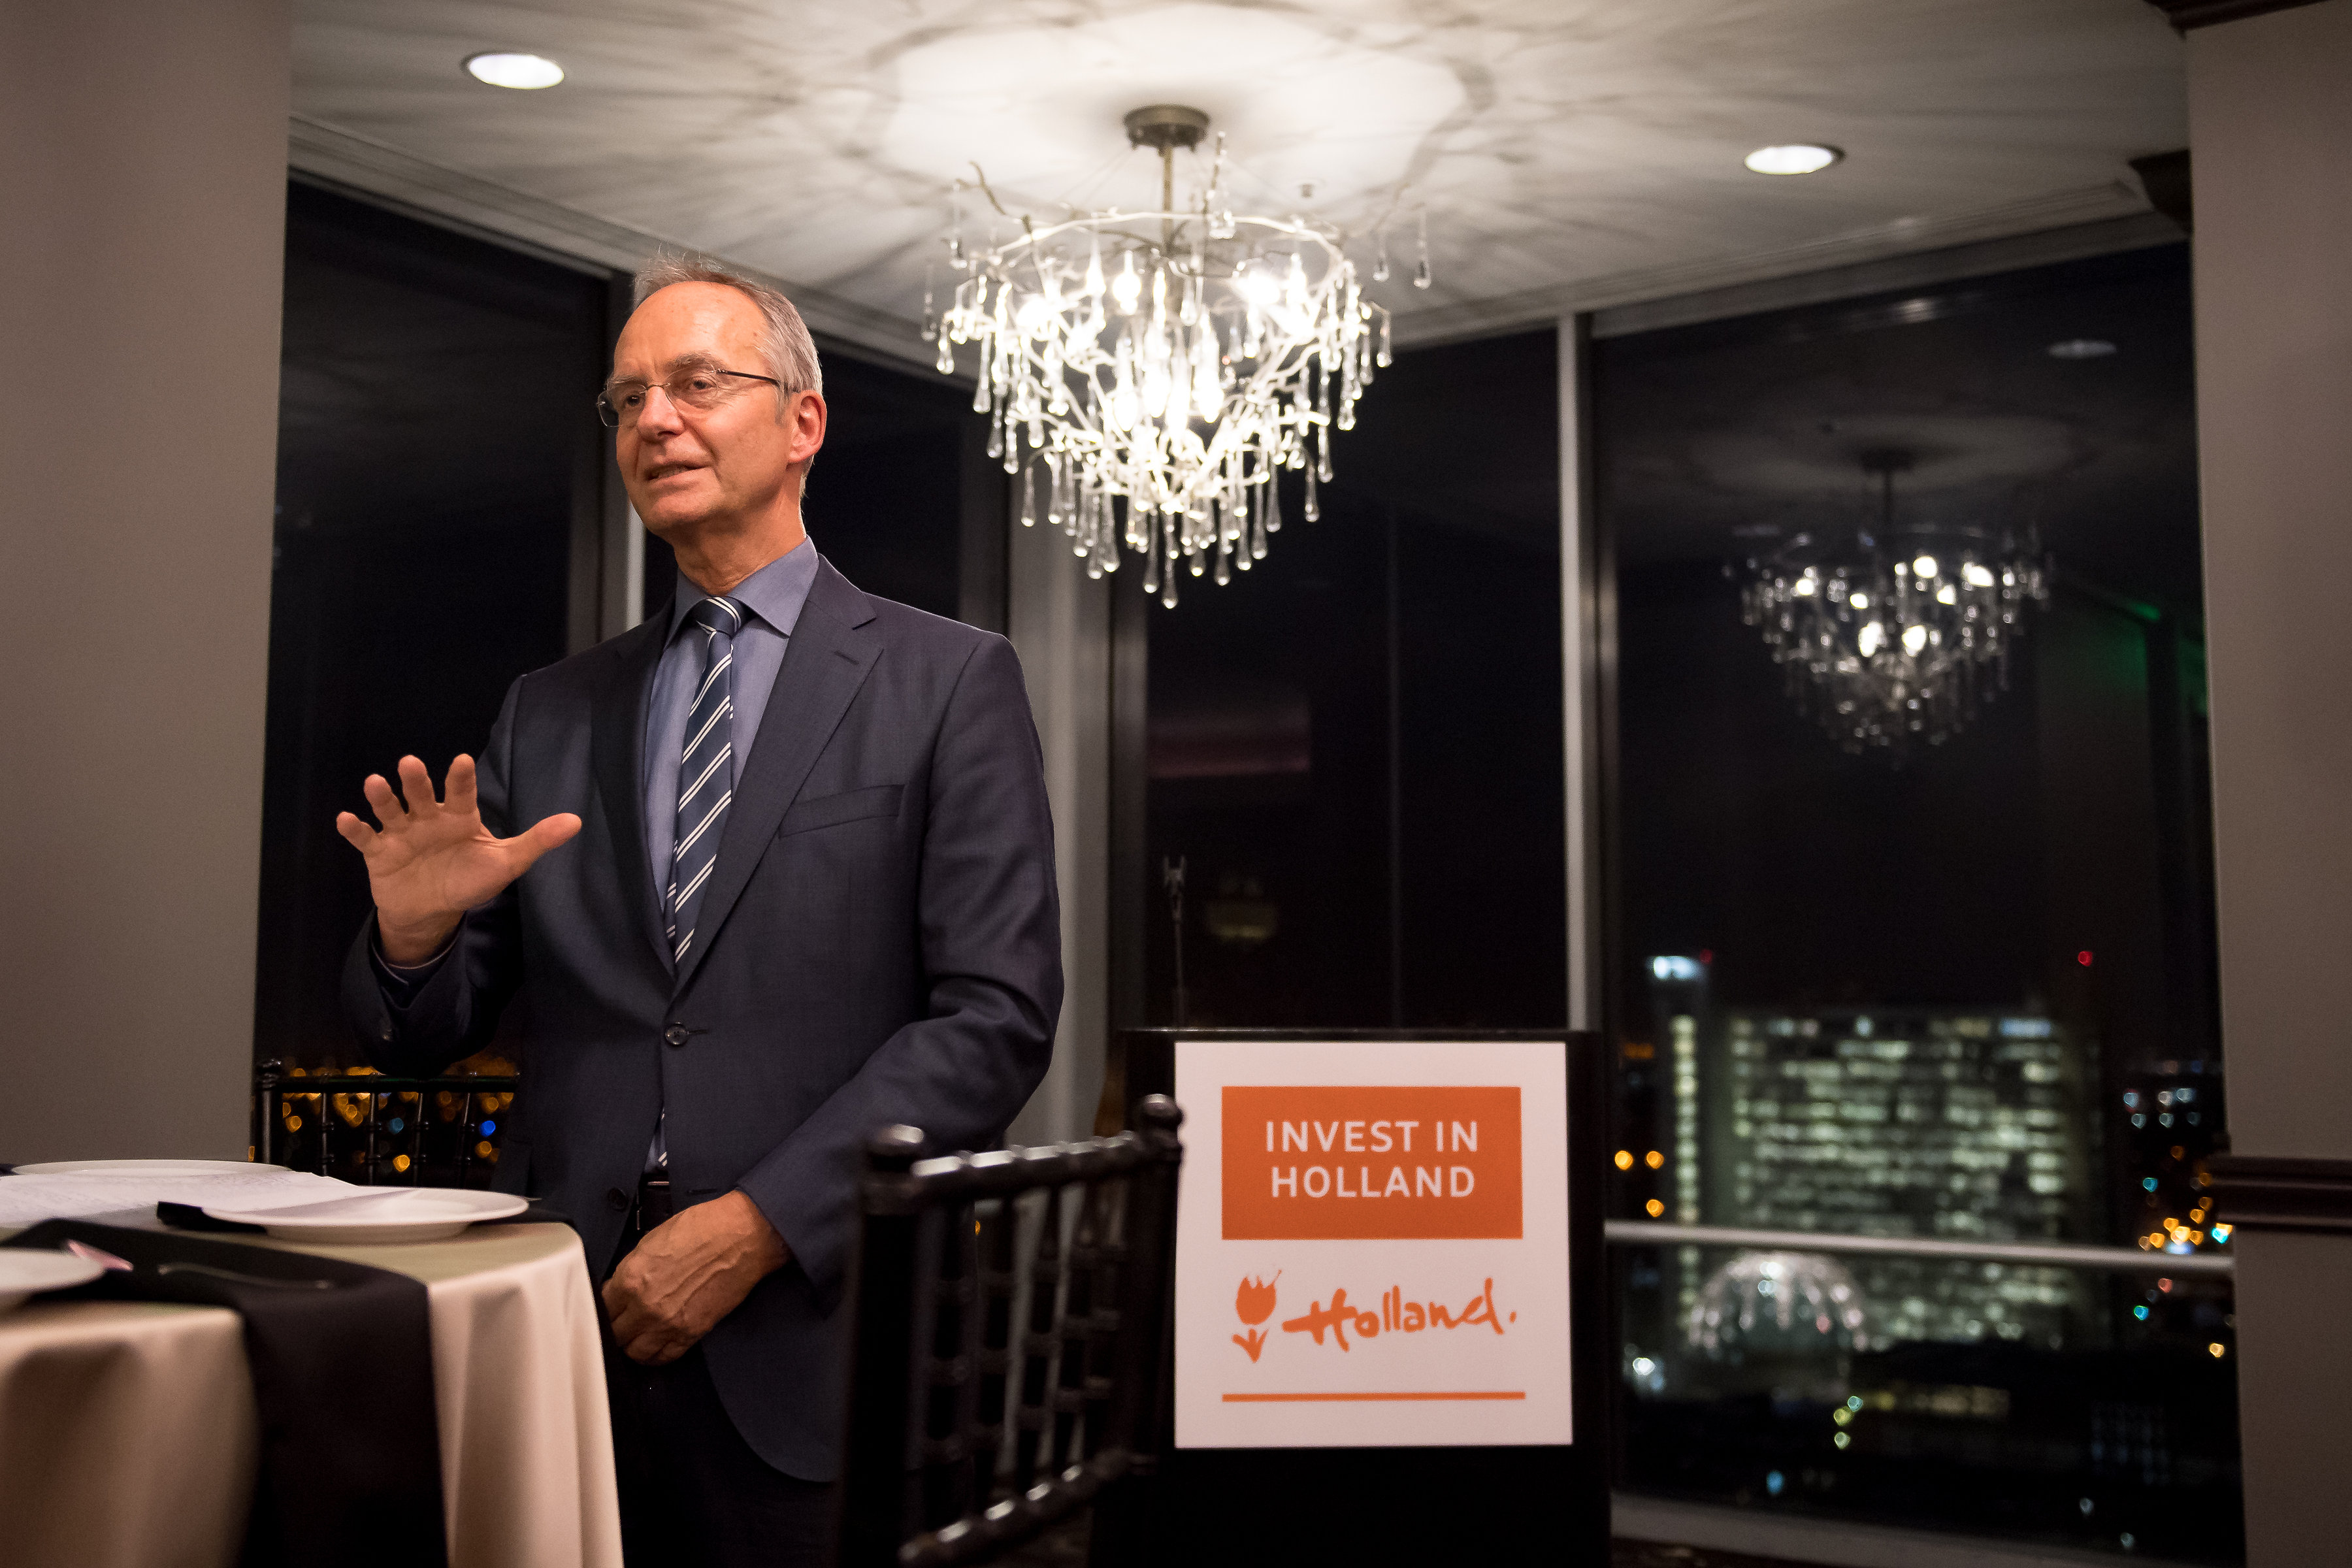 Netherlands Strengthen Economic Ties with Silicon Valley